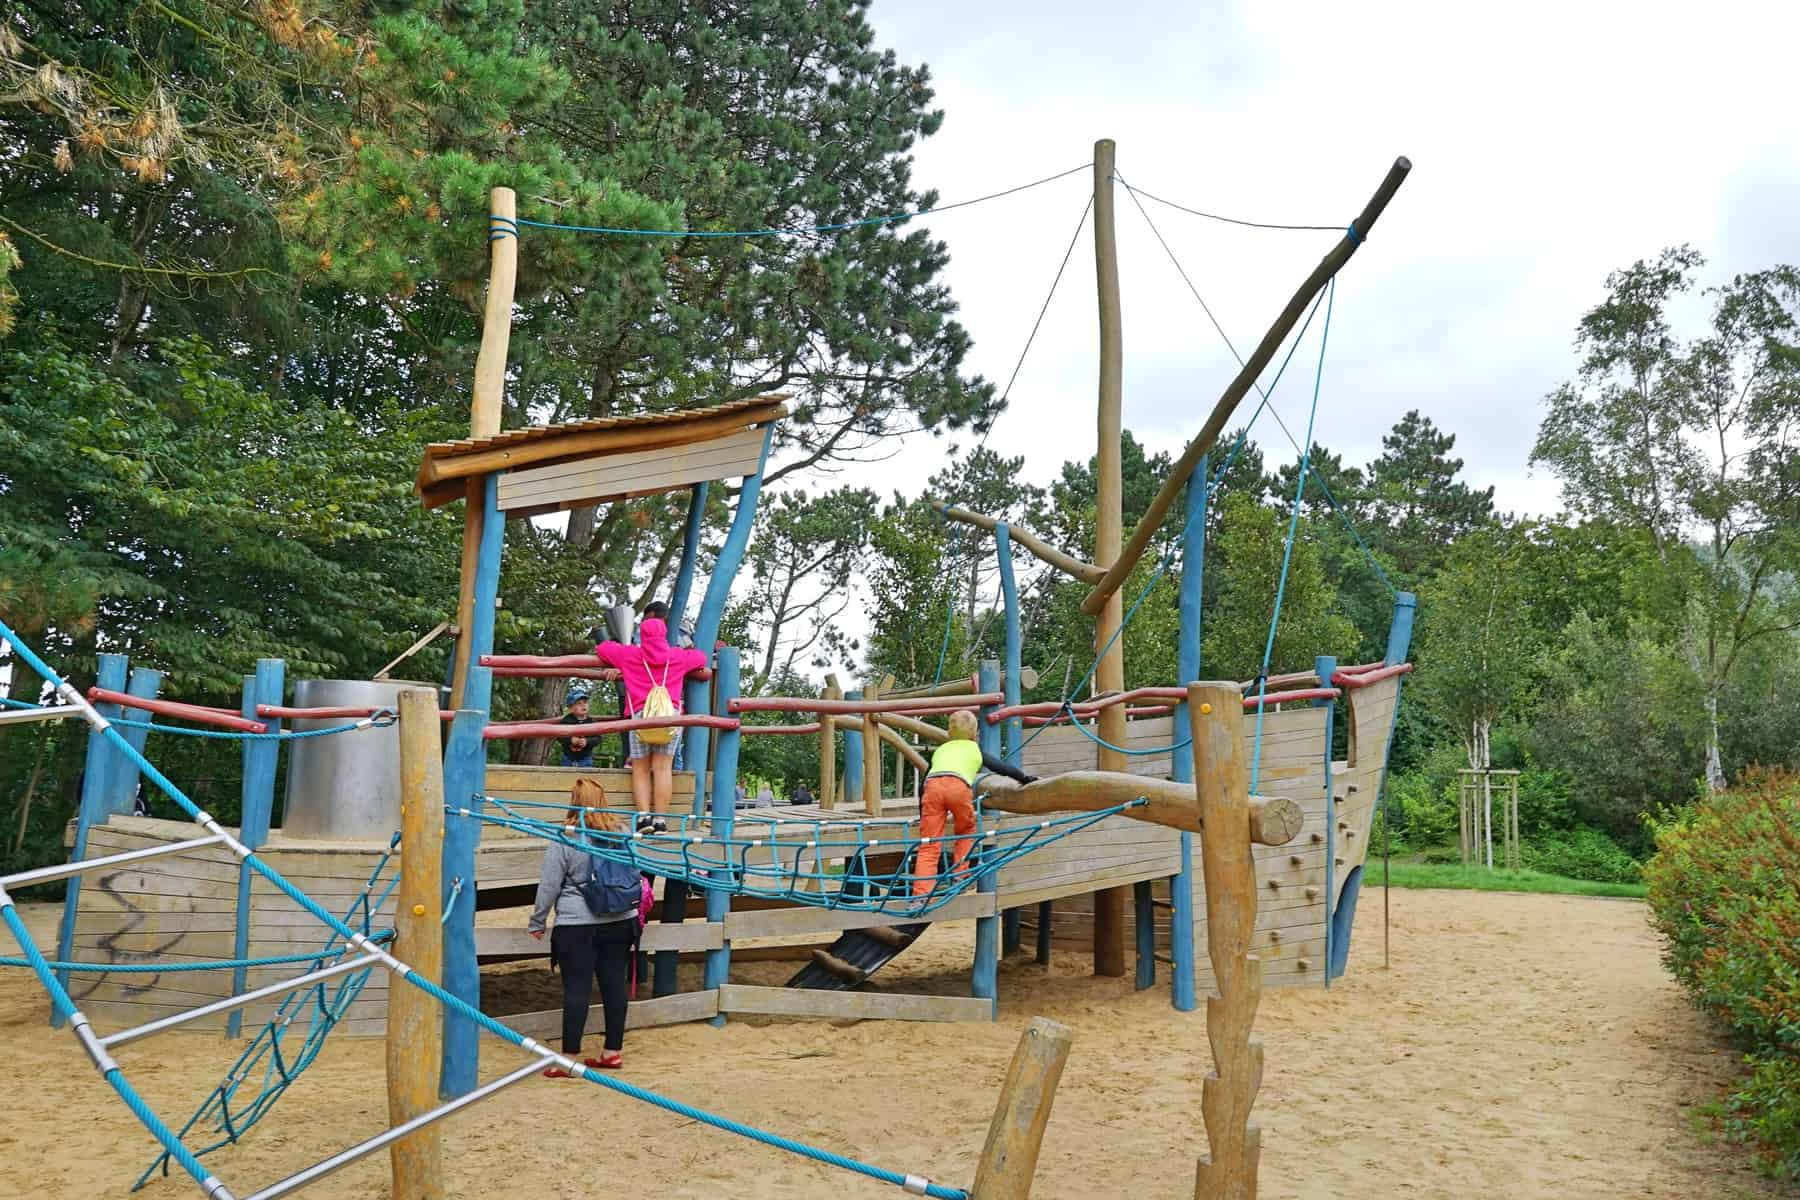 Outdoor Kinder Playground Cuxhaven Duhnen Cuxhaven With Kids Recommended By The